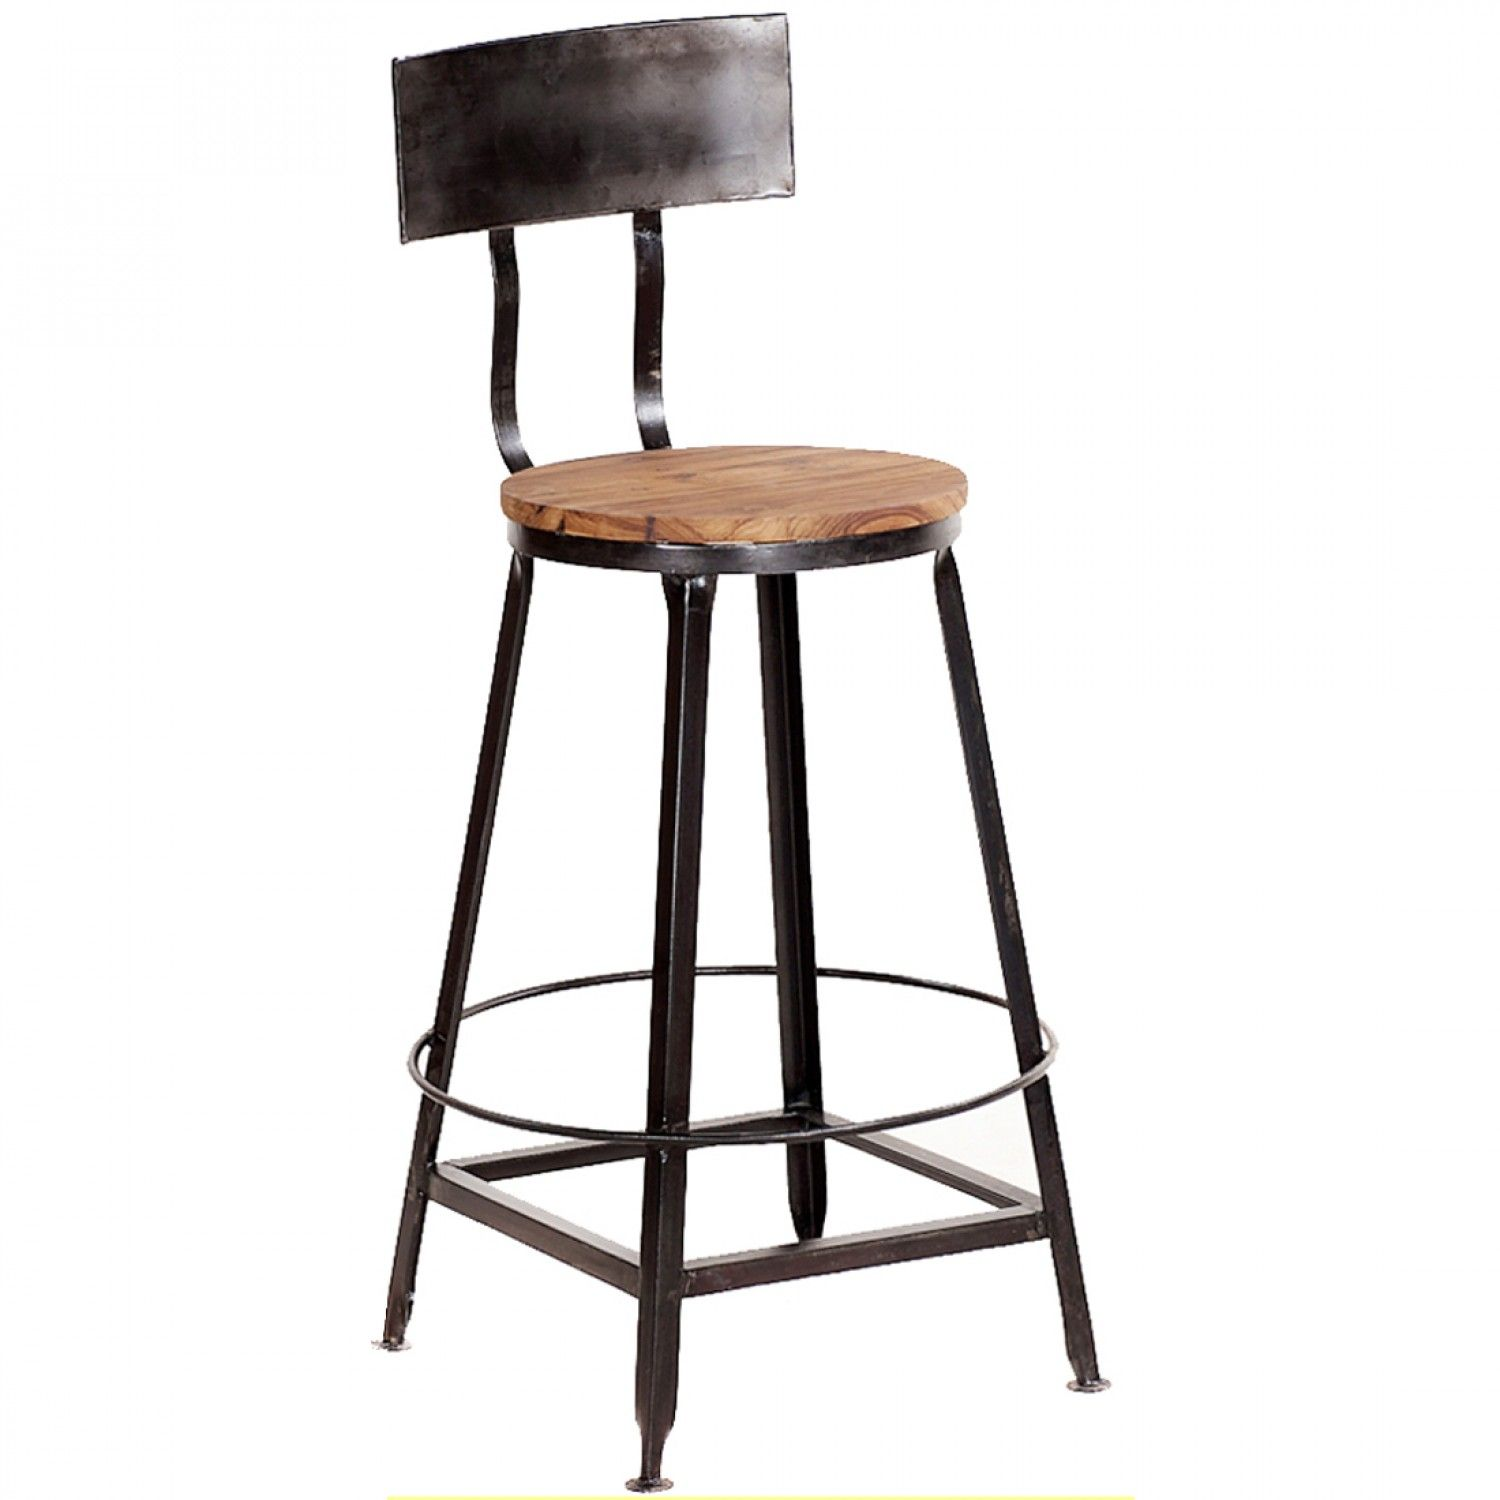 Depiction of Vintage Metal Bar Stools That Will Inspire You in Getting a Typical Kitchen Bar  sc 1 st  Pinterest & Depiction of Vintage Metal Bar Stools That Will Inspire You in ... islam-shia.org